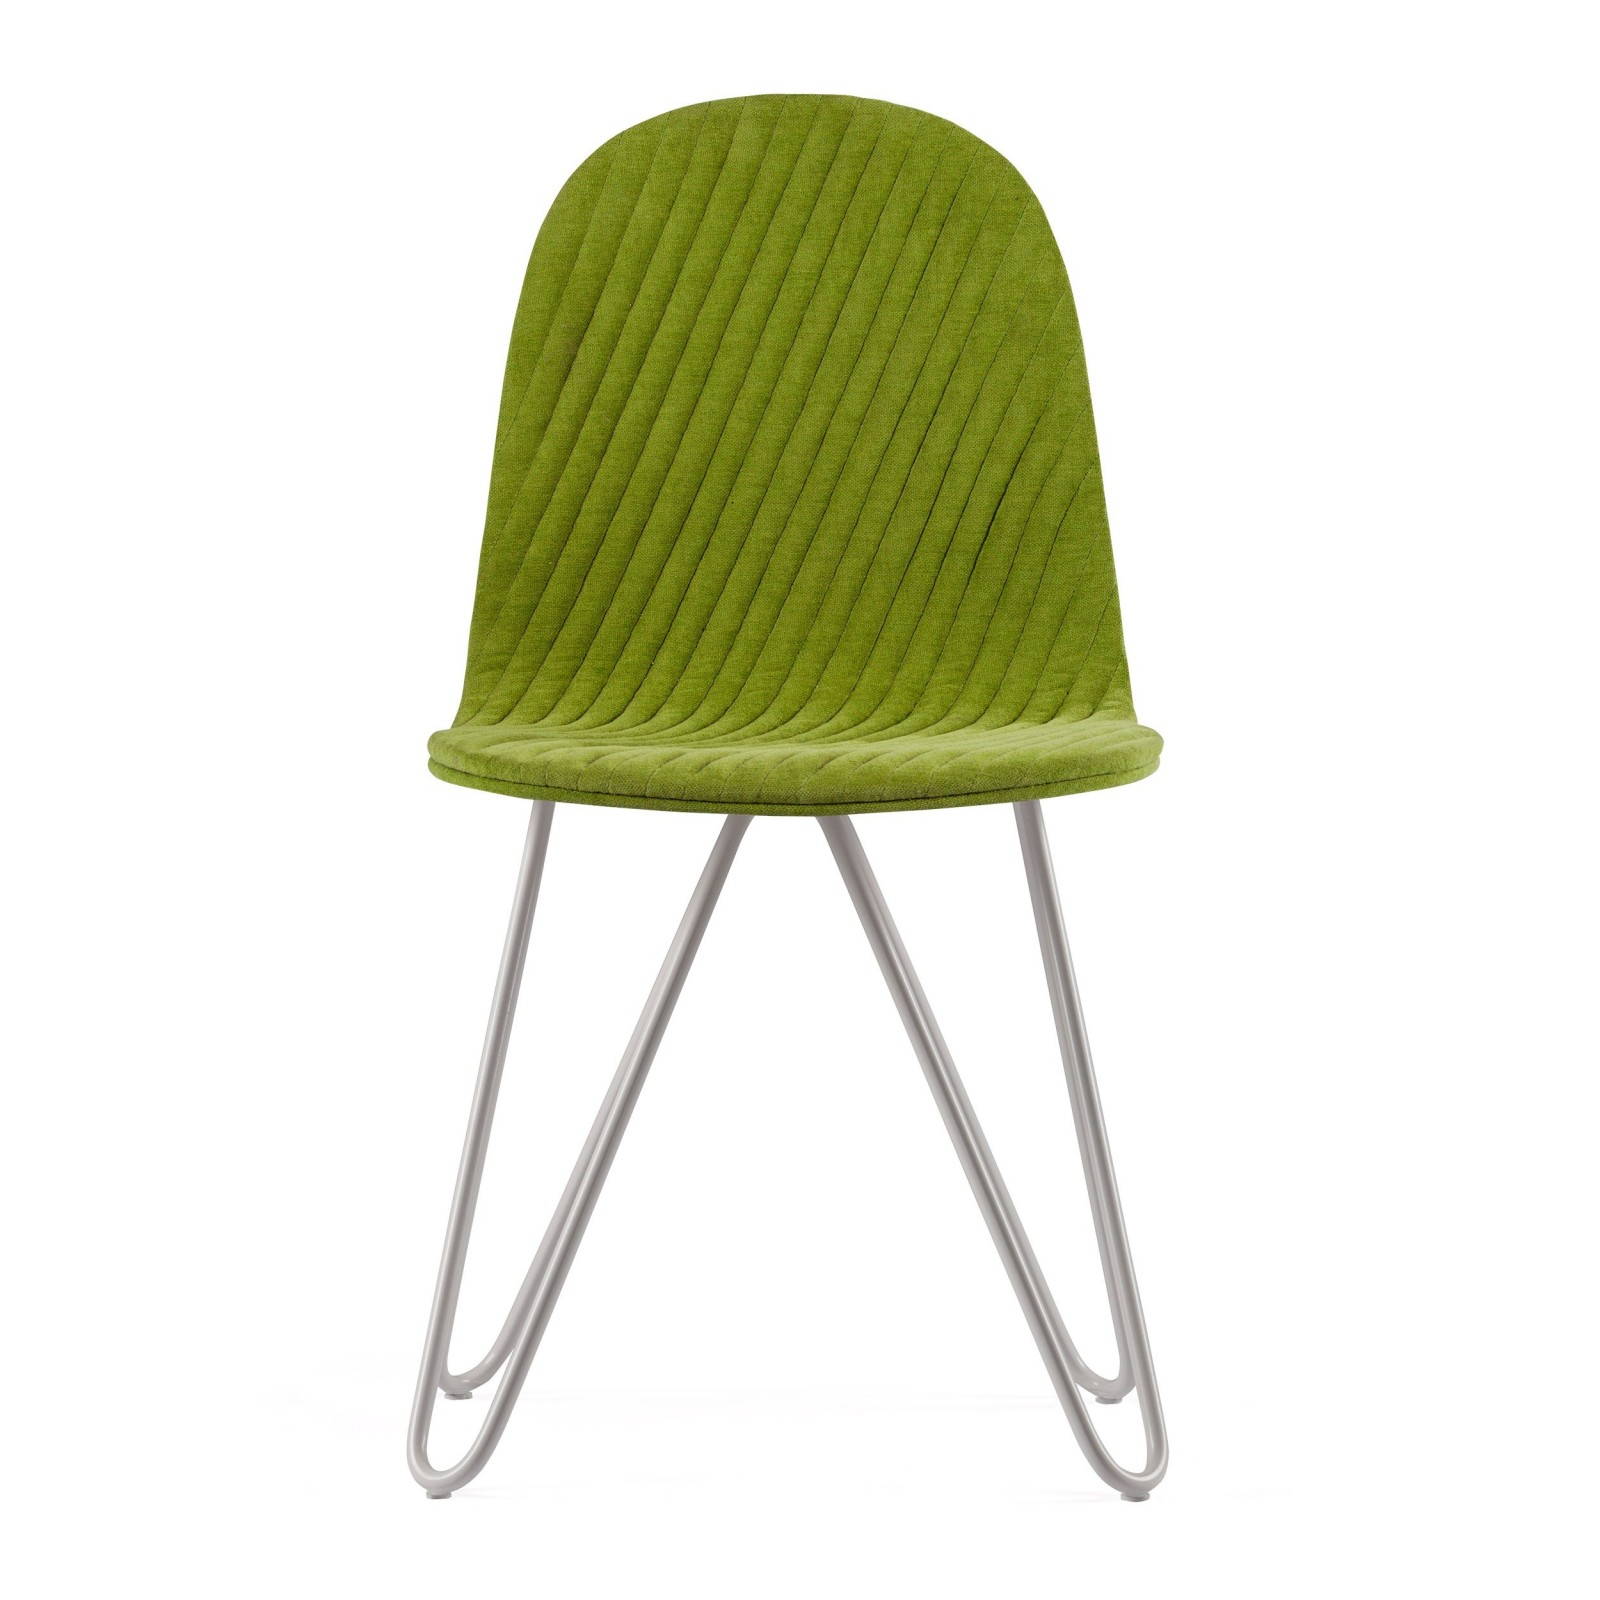 Mannequin chair - 03 - green